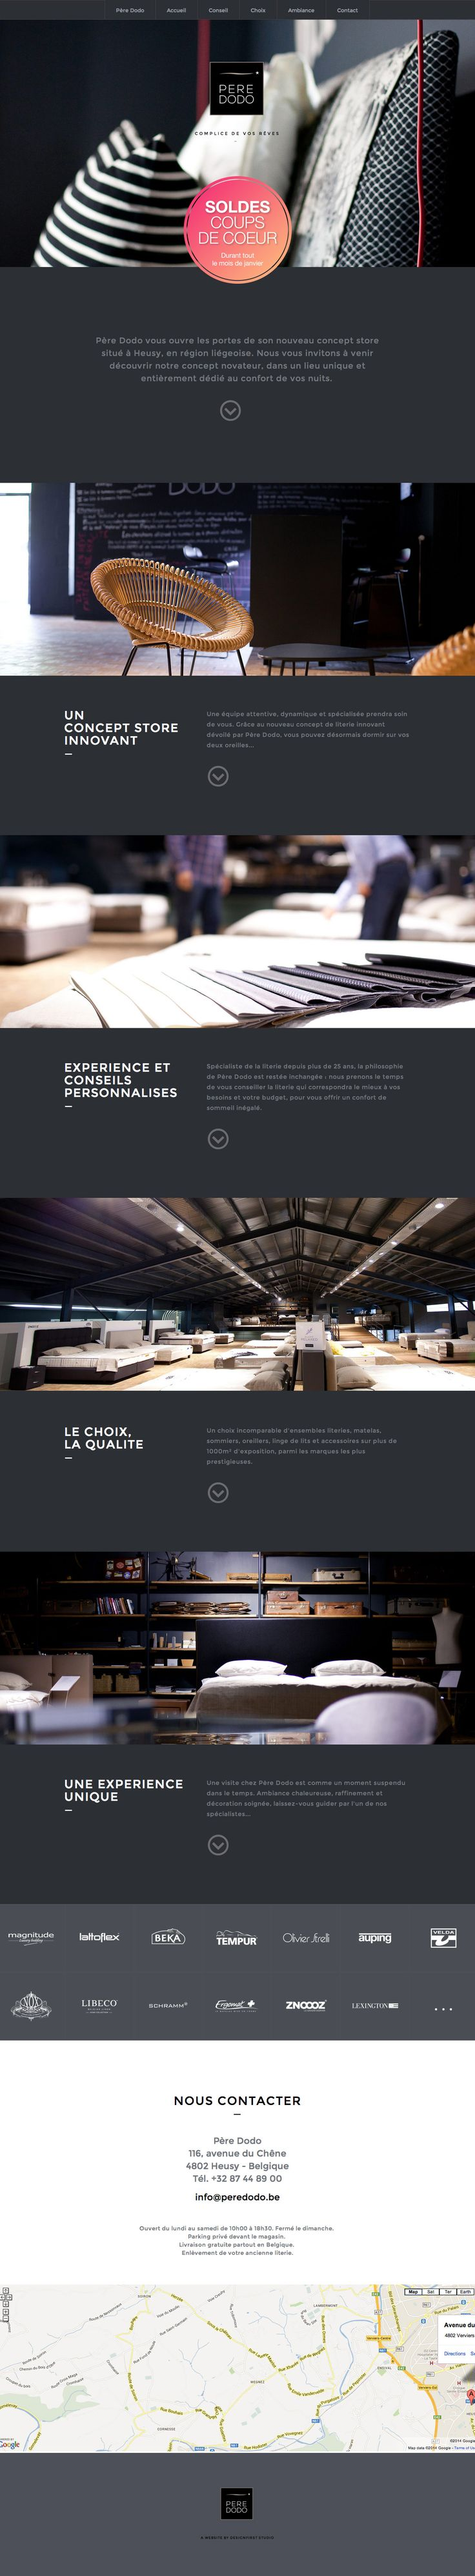 http://www.peredodo.be/ | #webdesign #it #web #design #layout #userinterface #website #webdesign < repinned by www.BlickeDeeler.de | Visit our website www.blickedeeler.de/leistungen/webdesign